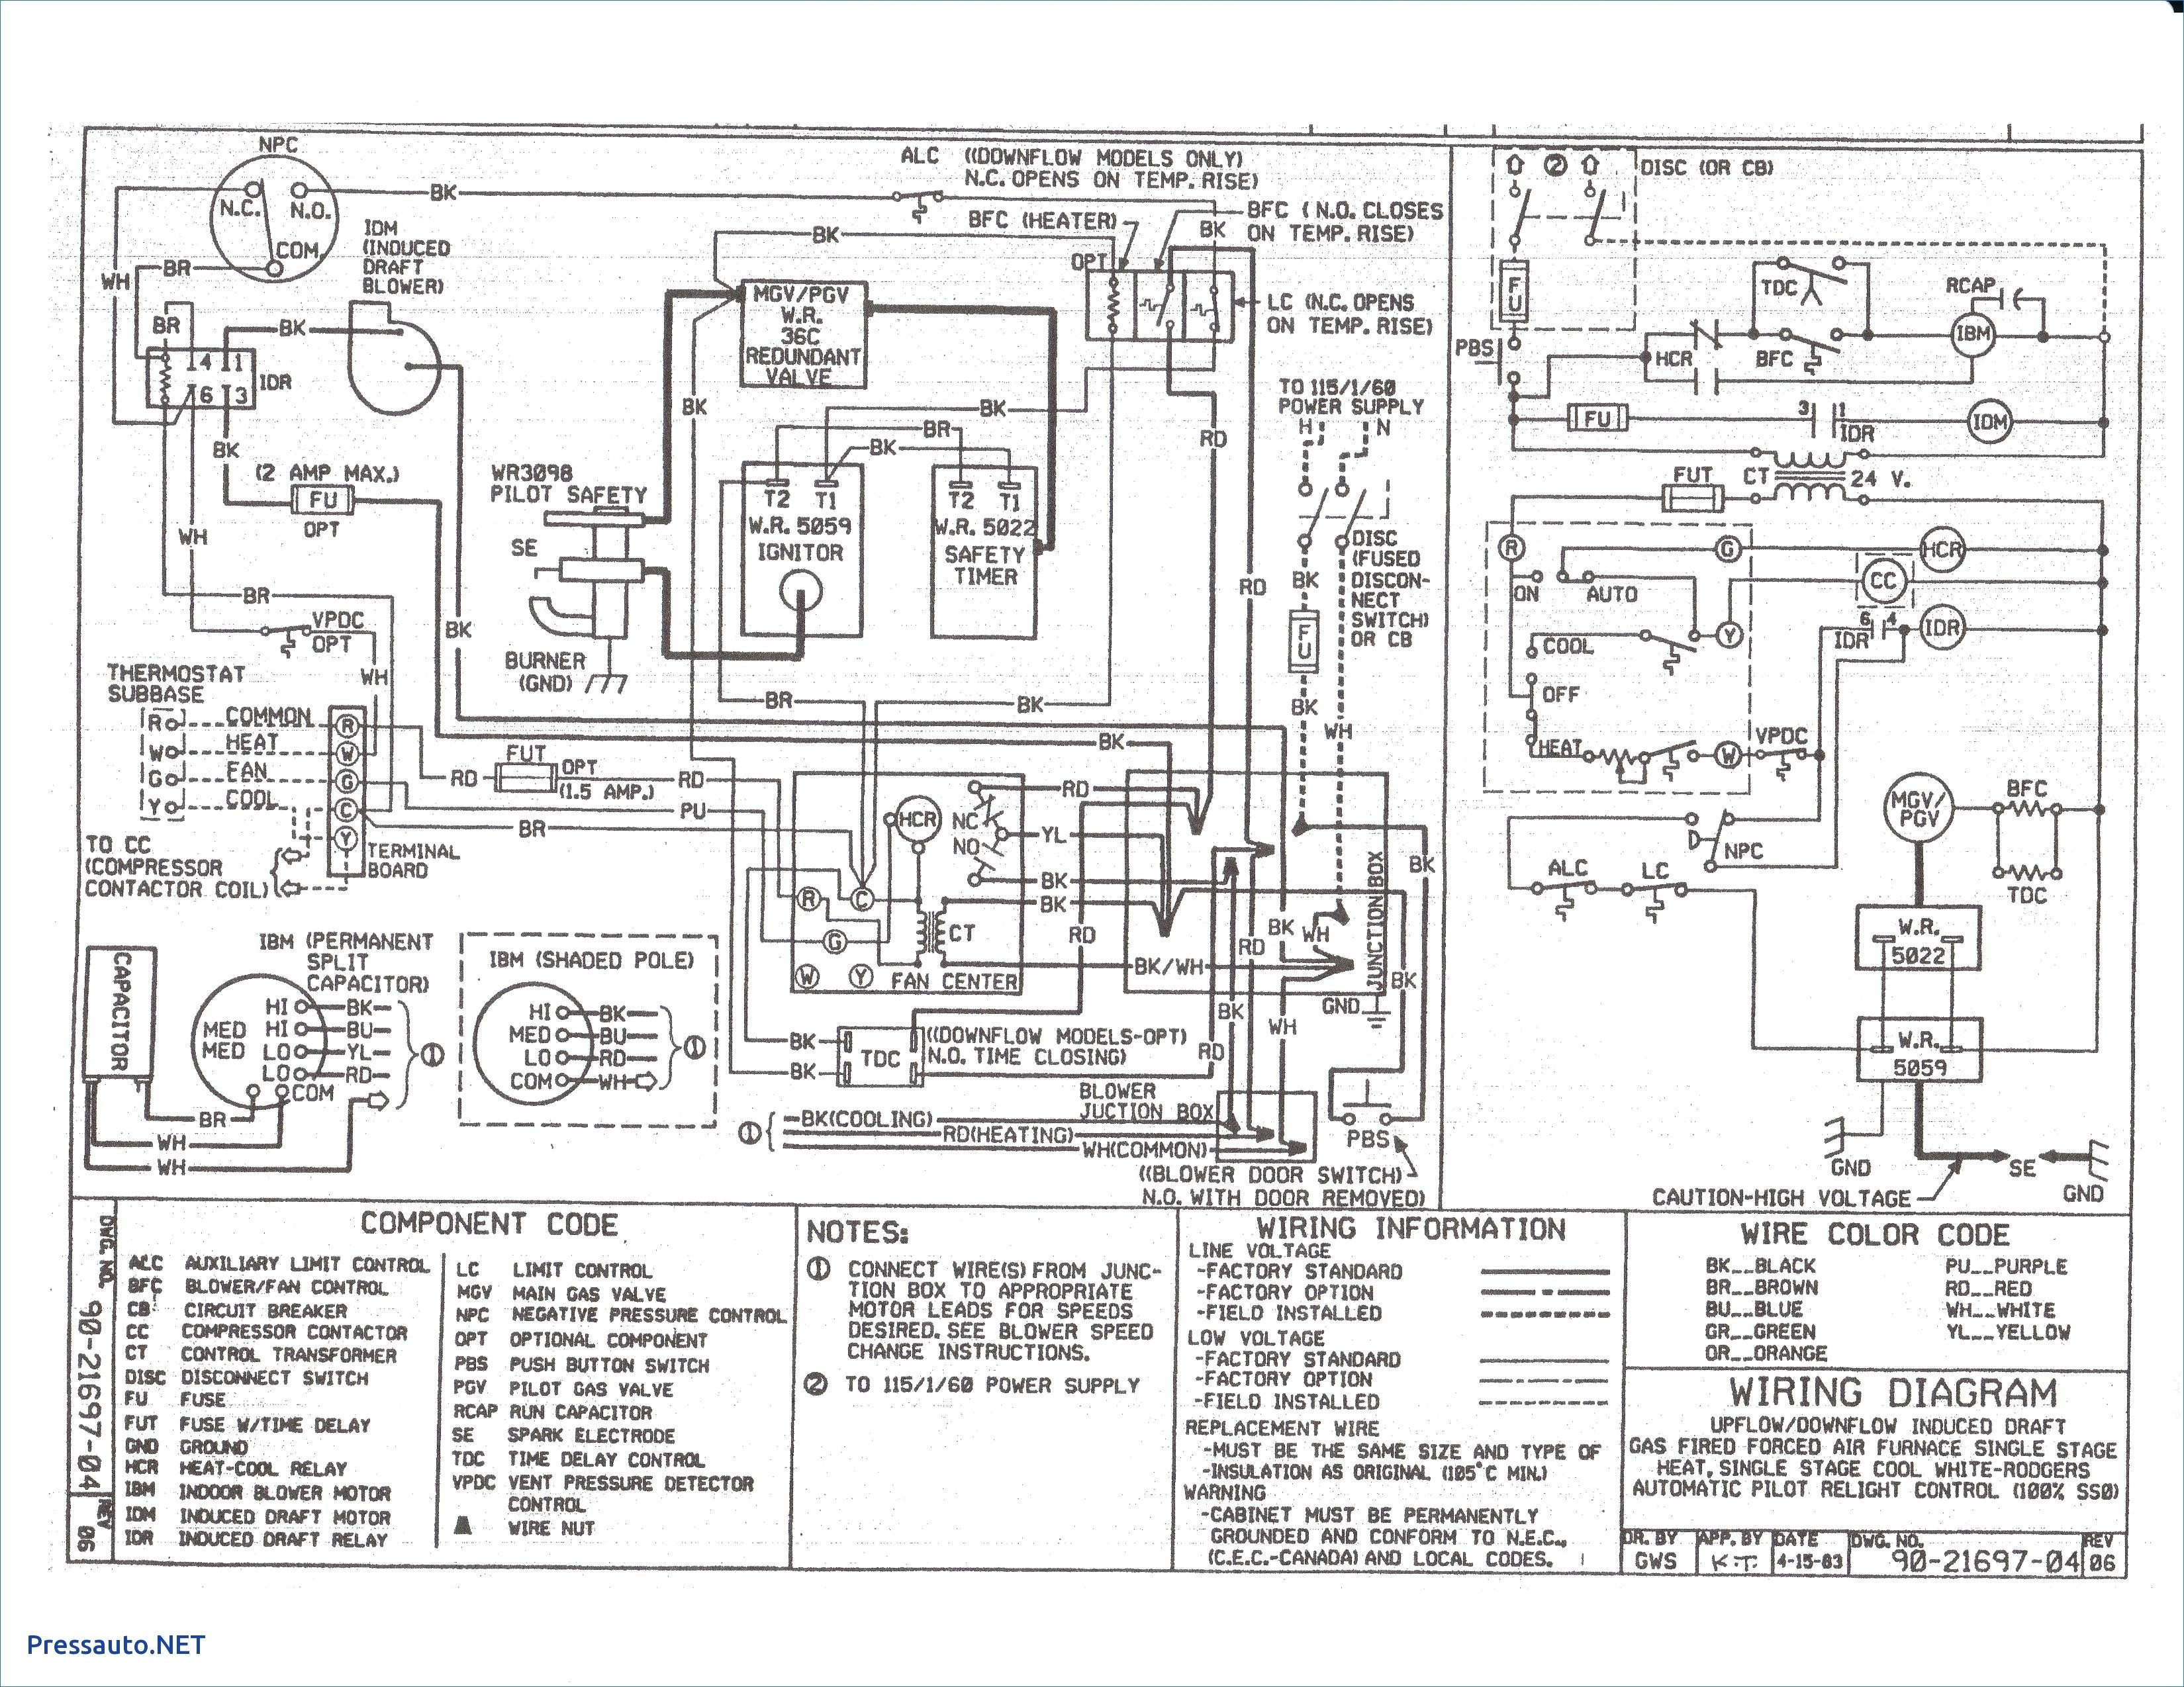 Full Size of Electric Furnace Wiring Diagram For Intertherm Archived Wiring Diagram Category With Post